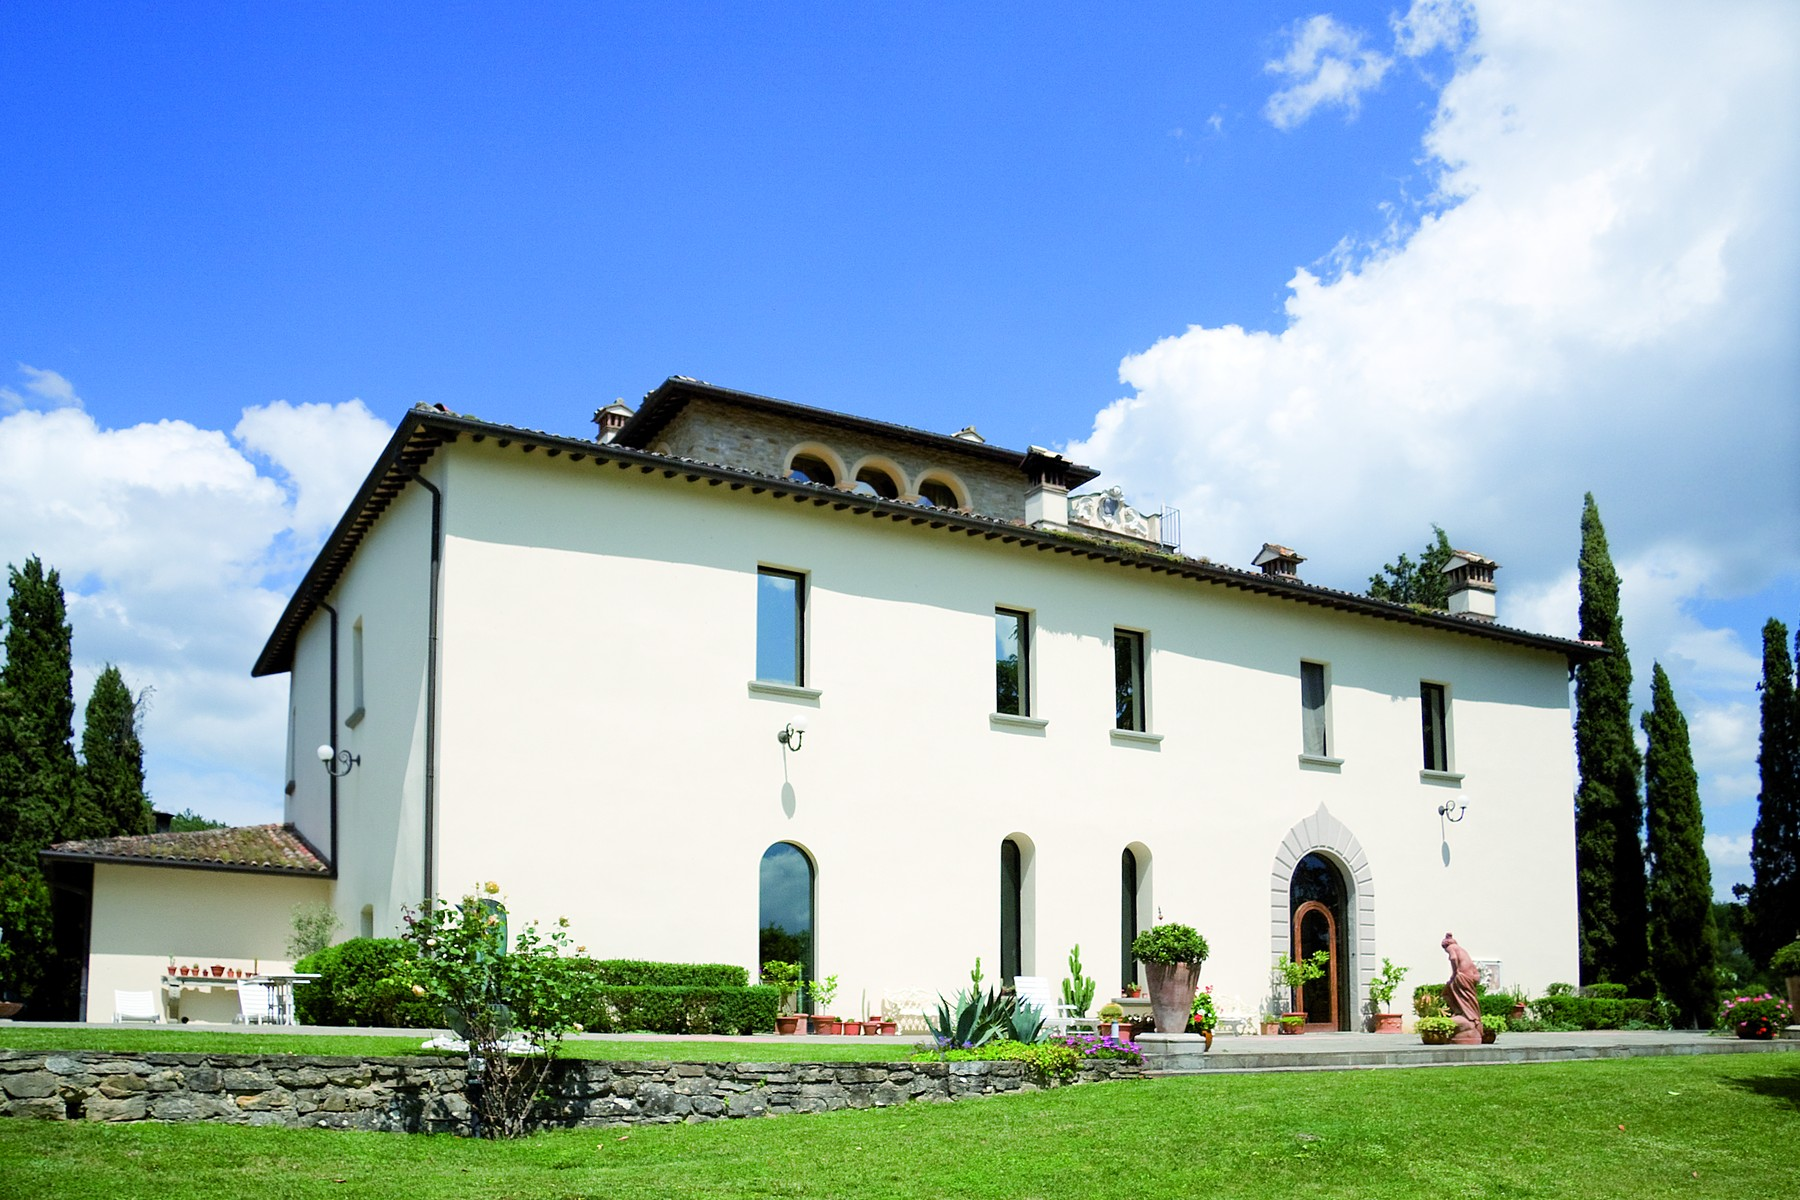 Single Family Home for Sale at Exclusive villa in umbrian countryside Voc. Coppi Citta Di Castello, 06012 Italy